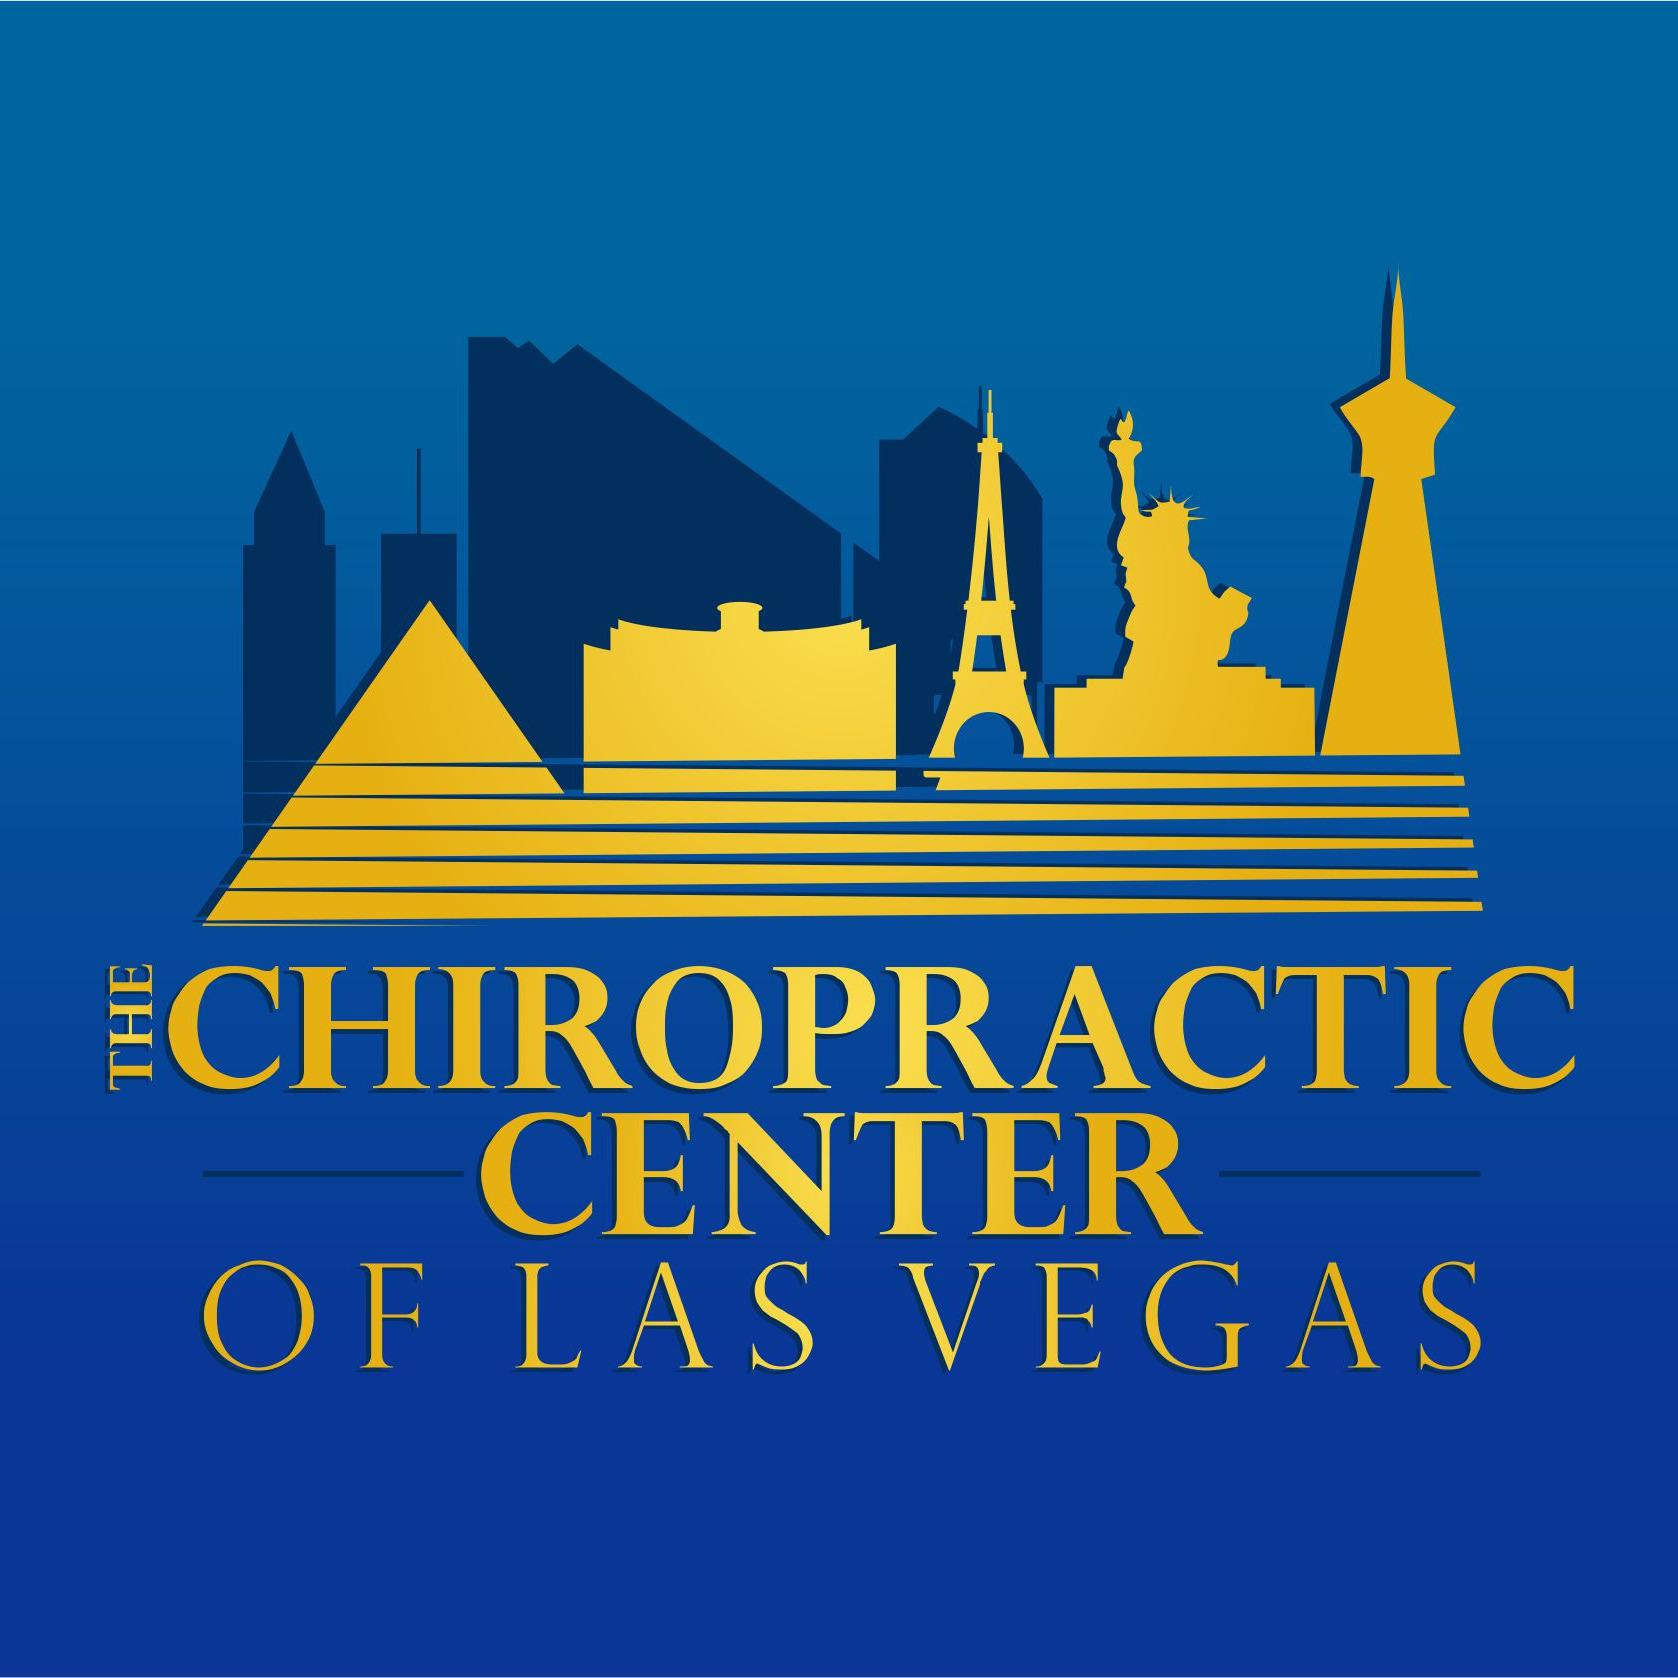 The Chiropractic Center of Las Vegas